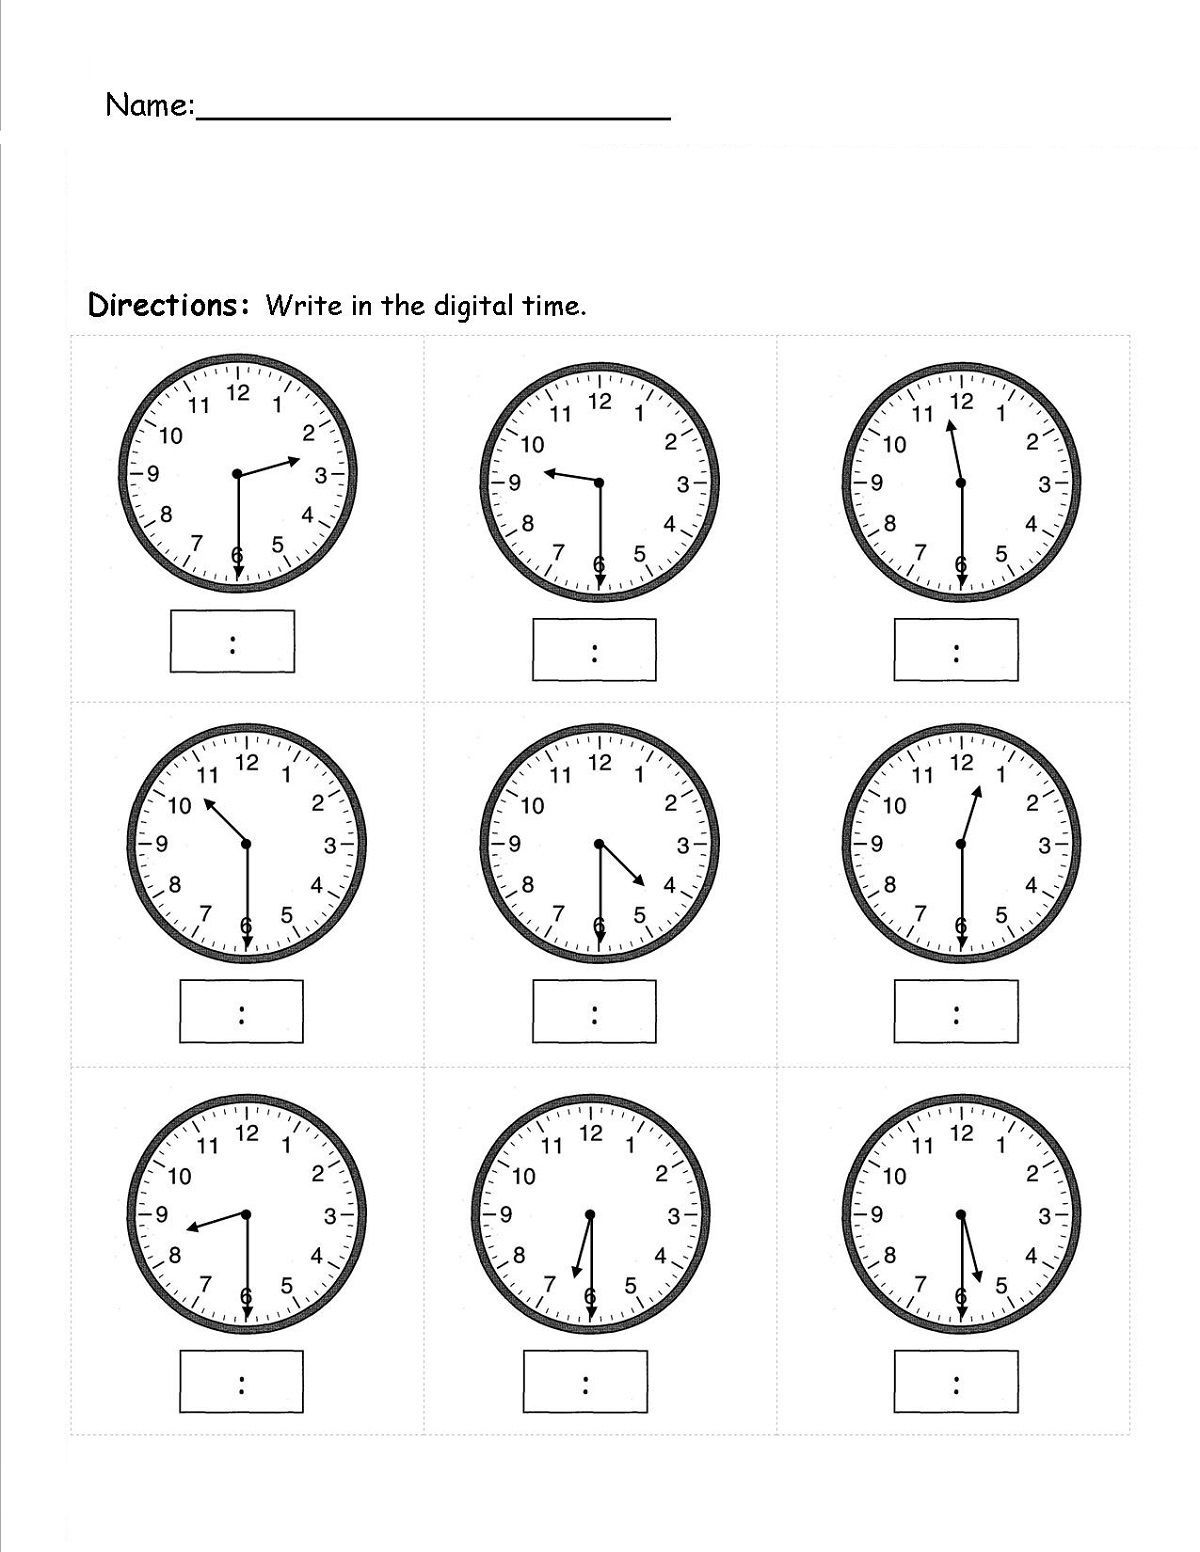 Easy Elapsed Time Worksheets Simple Free Printable Math Worksheets 2nd Grade Math Worksheets Time Worksheets